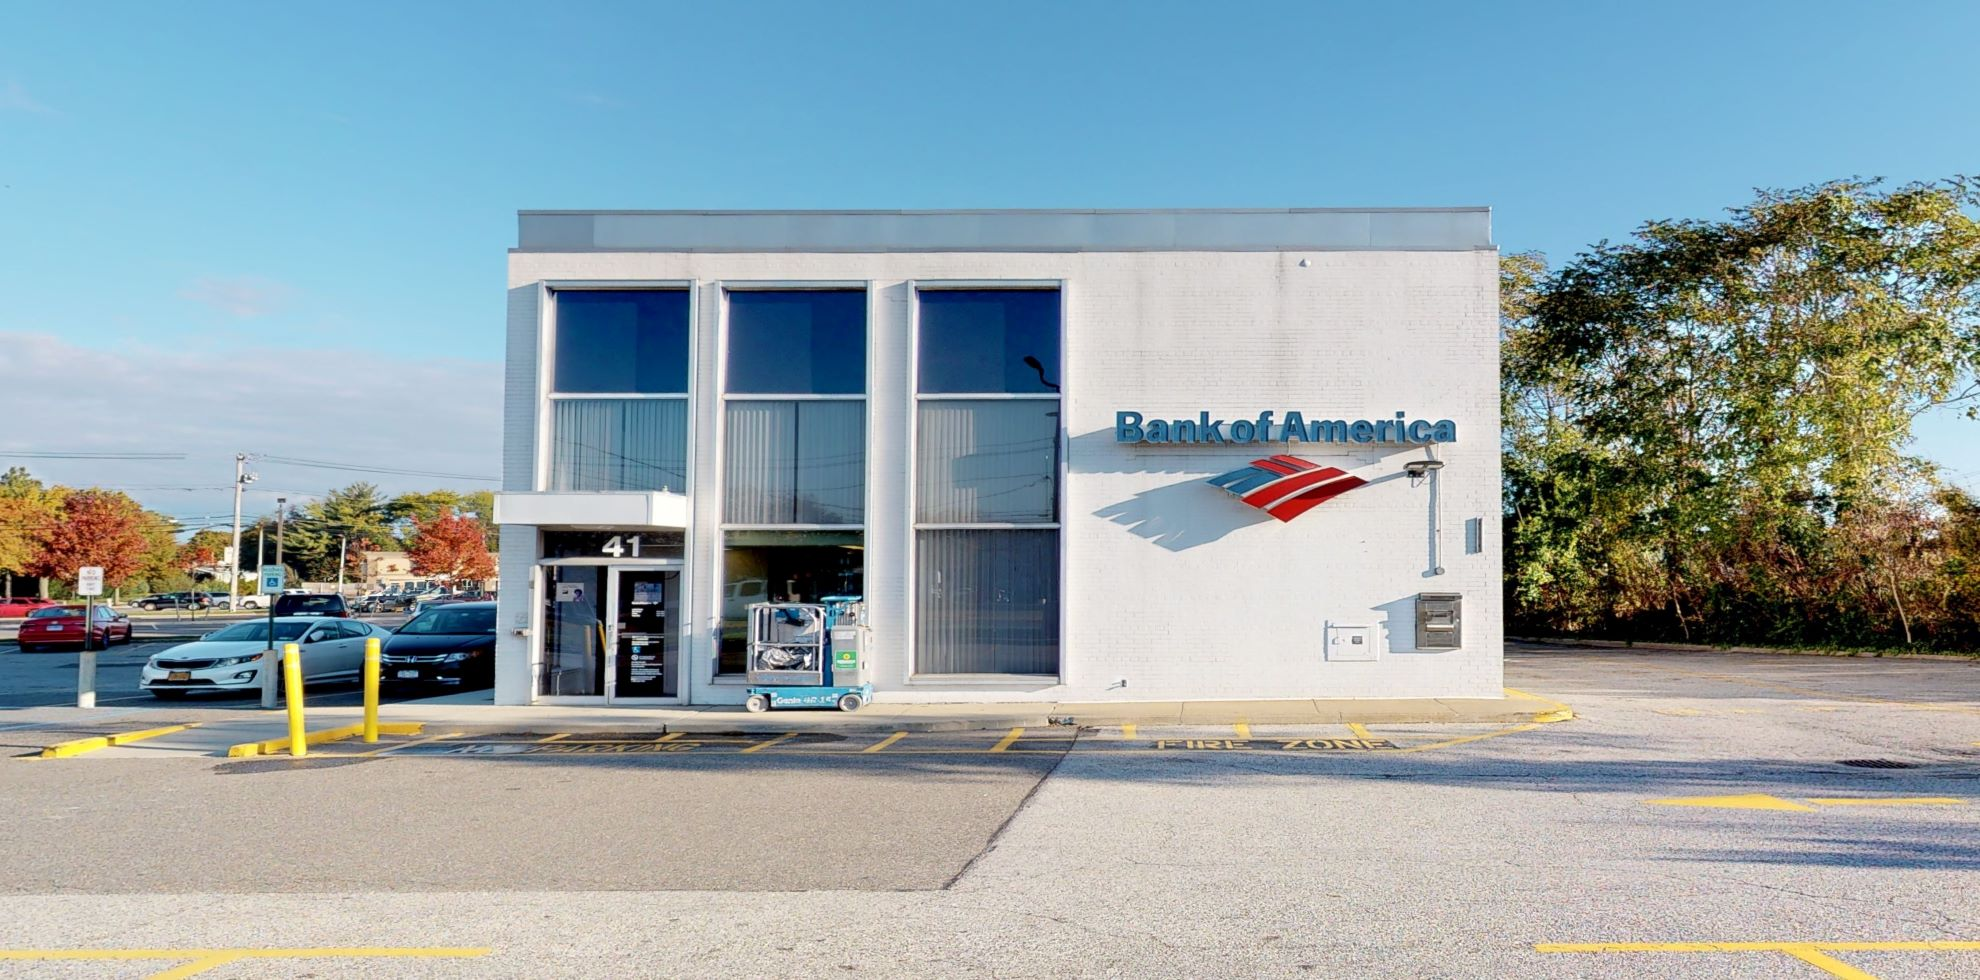 Bank of America financial center with drive-thru ATM | 41 Veterans Memorial Hwy, Commack, NY 11725